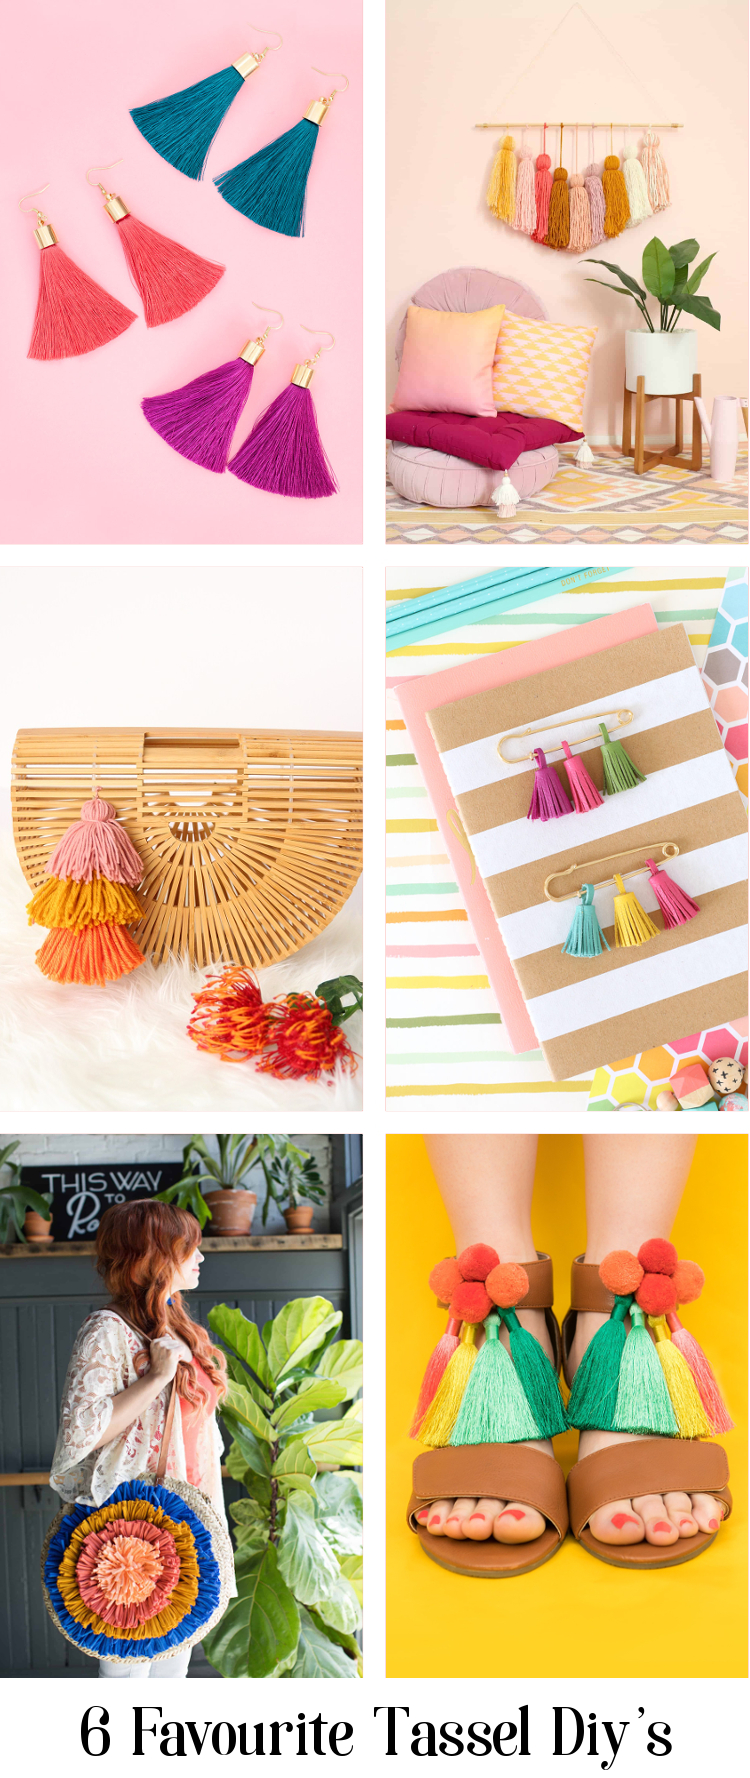 Add a touch of flair to your bag, shoes and even your walls with one of these easy tassel diy's. A bright, cheery craft perfect for summer #tassel #yarn #summer